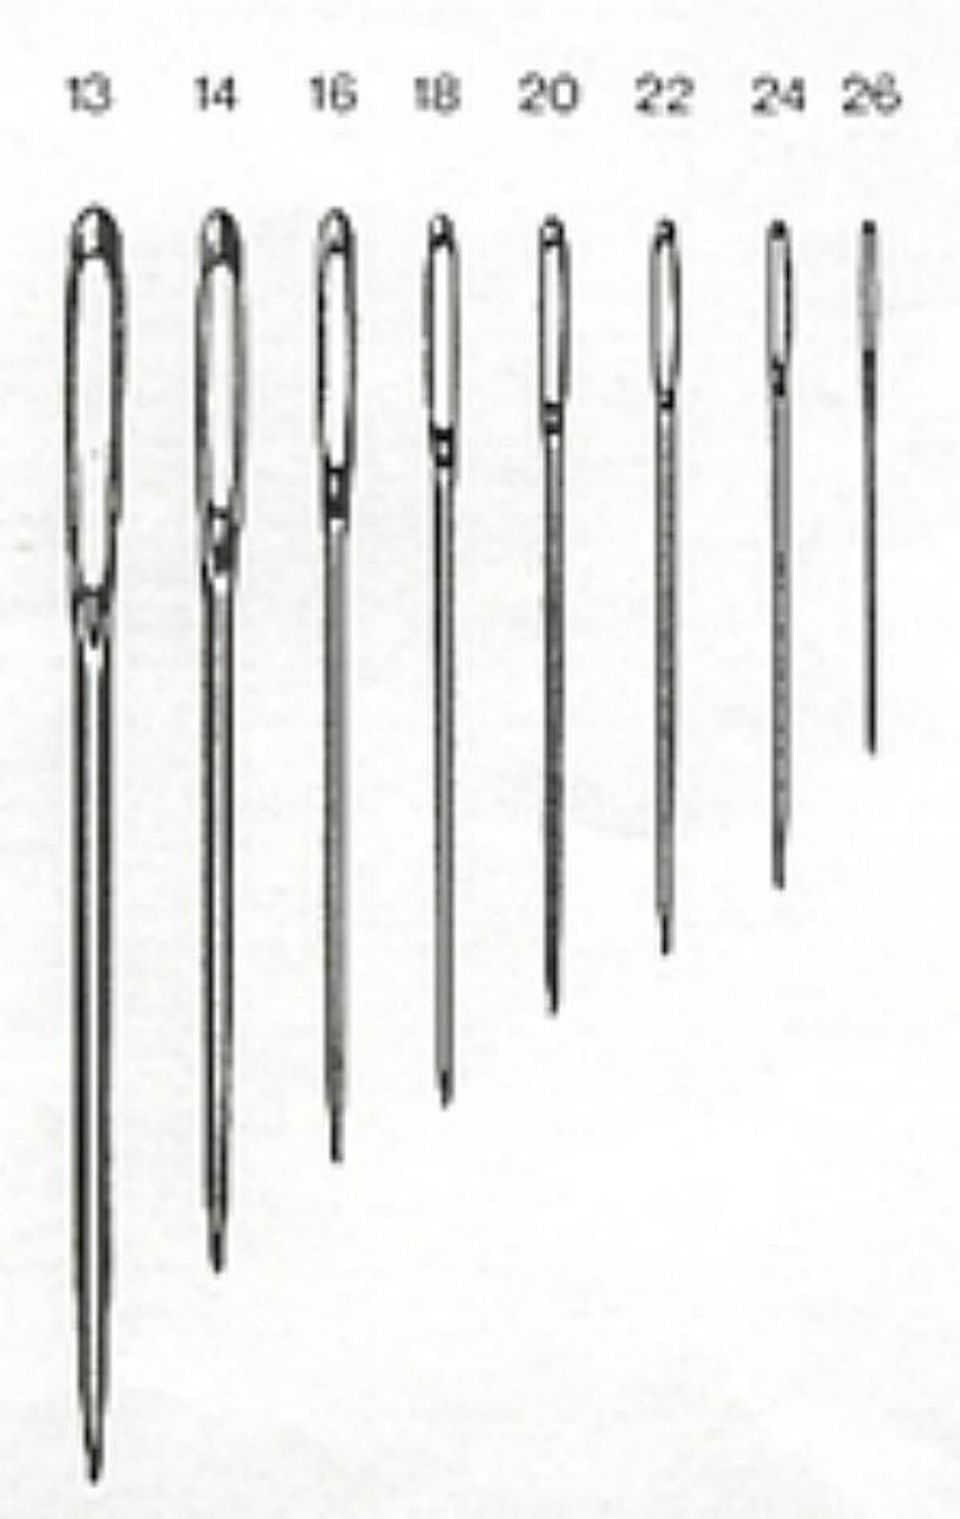 needles of various sizes